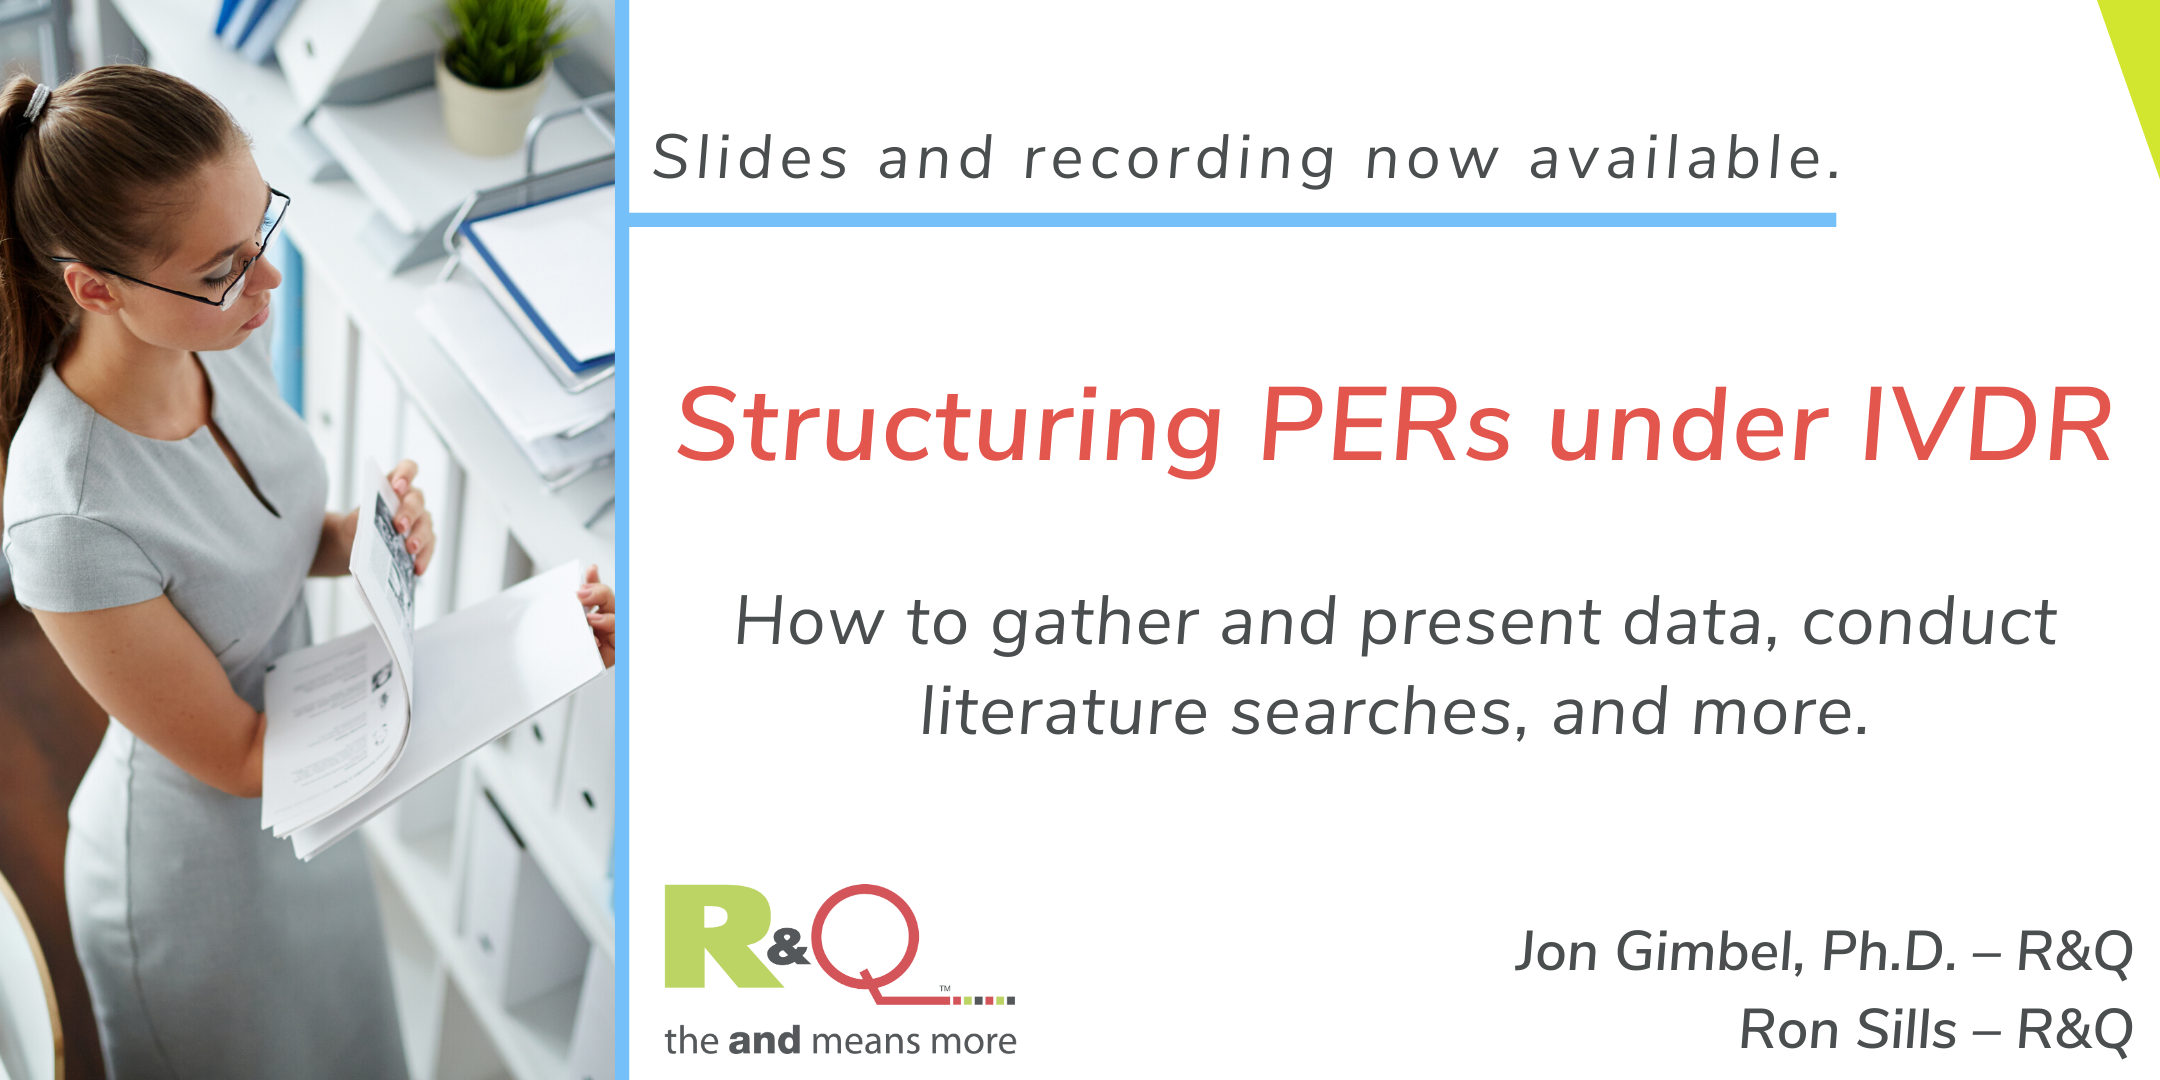 Structuring PERs under IVDR